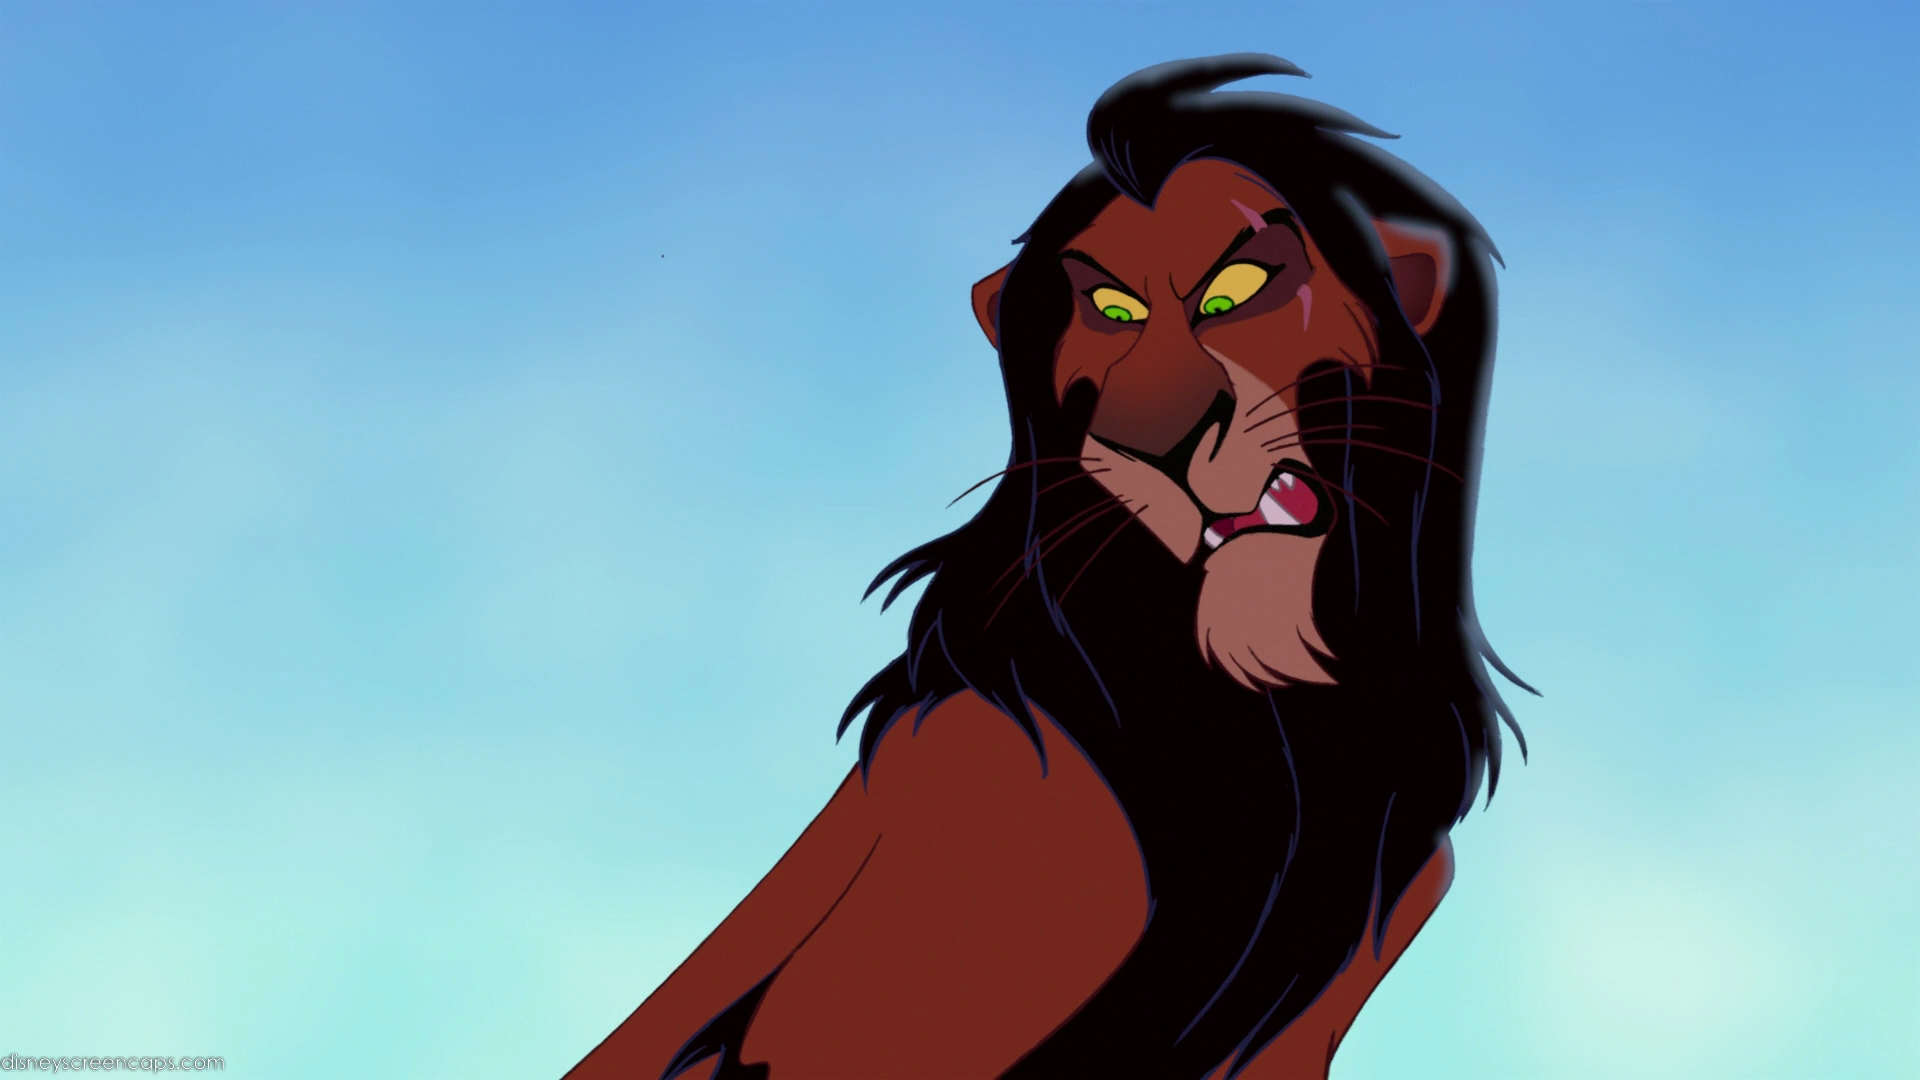 The Lion King remake finds a Scar in Chiwetel Ejiofor